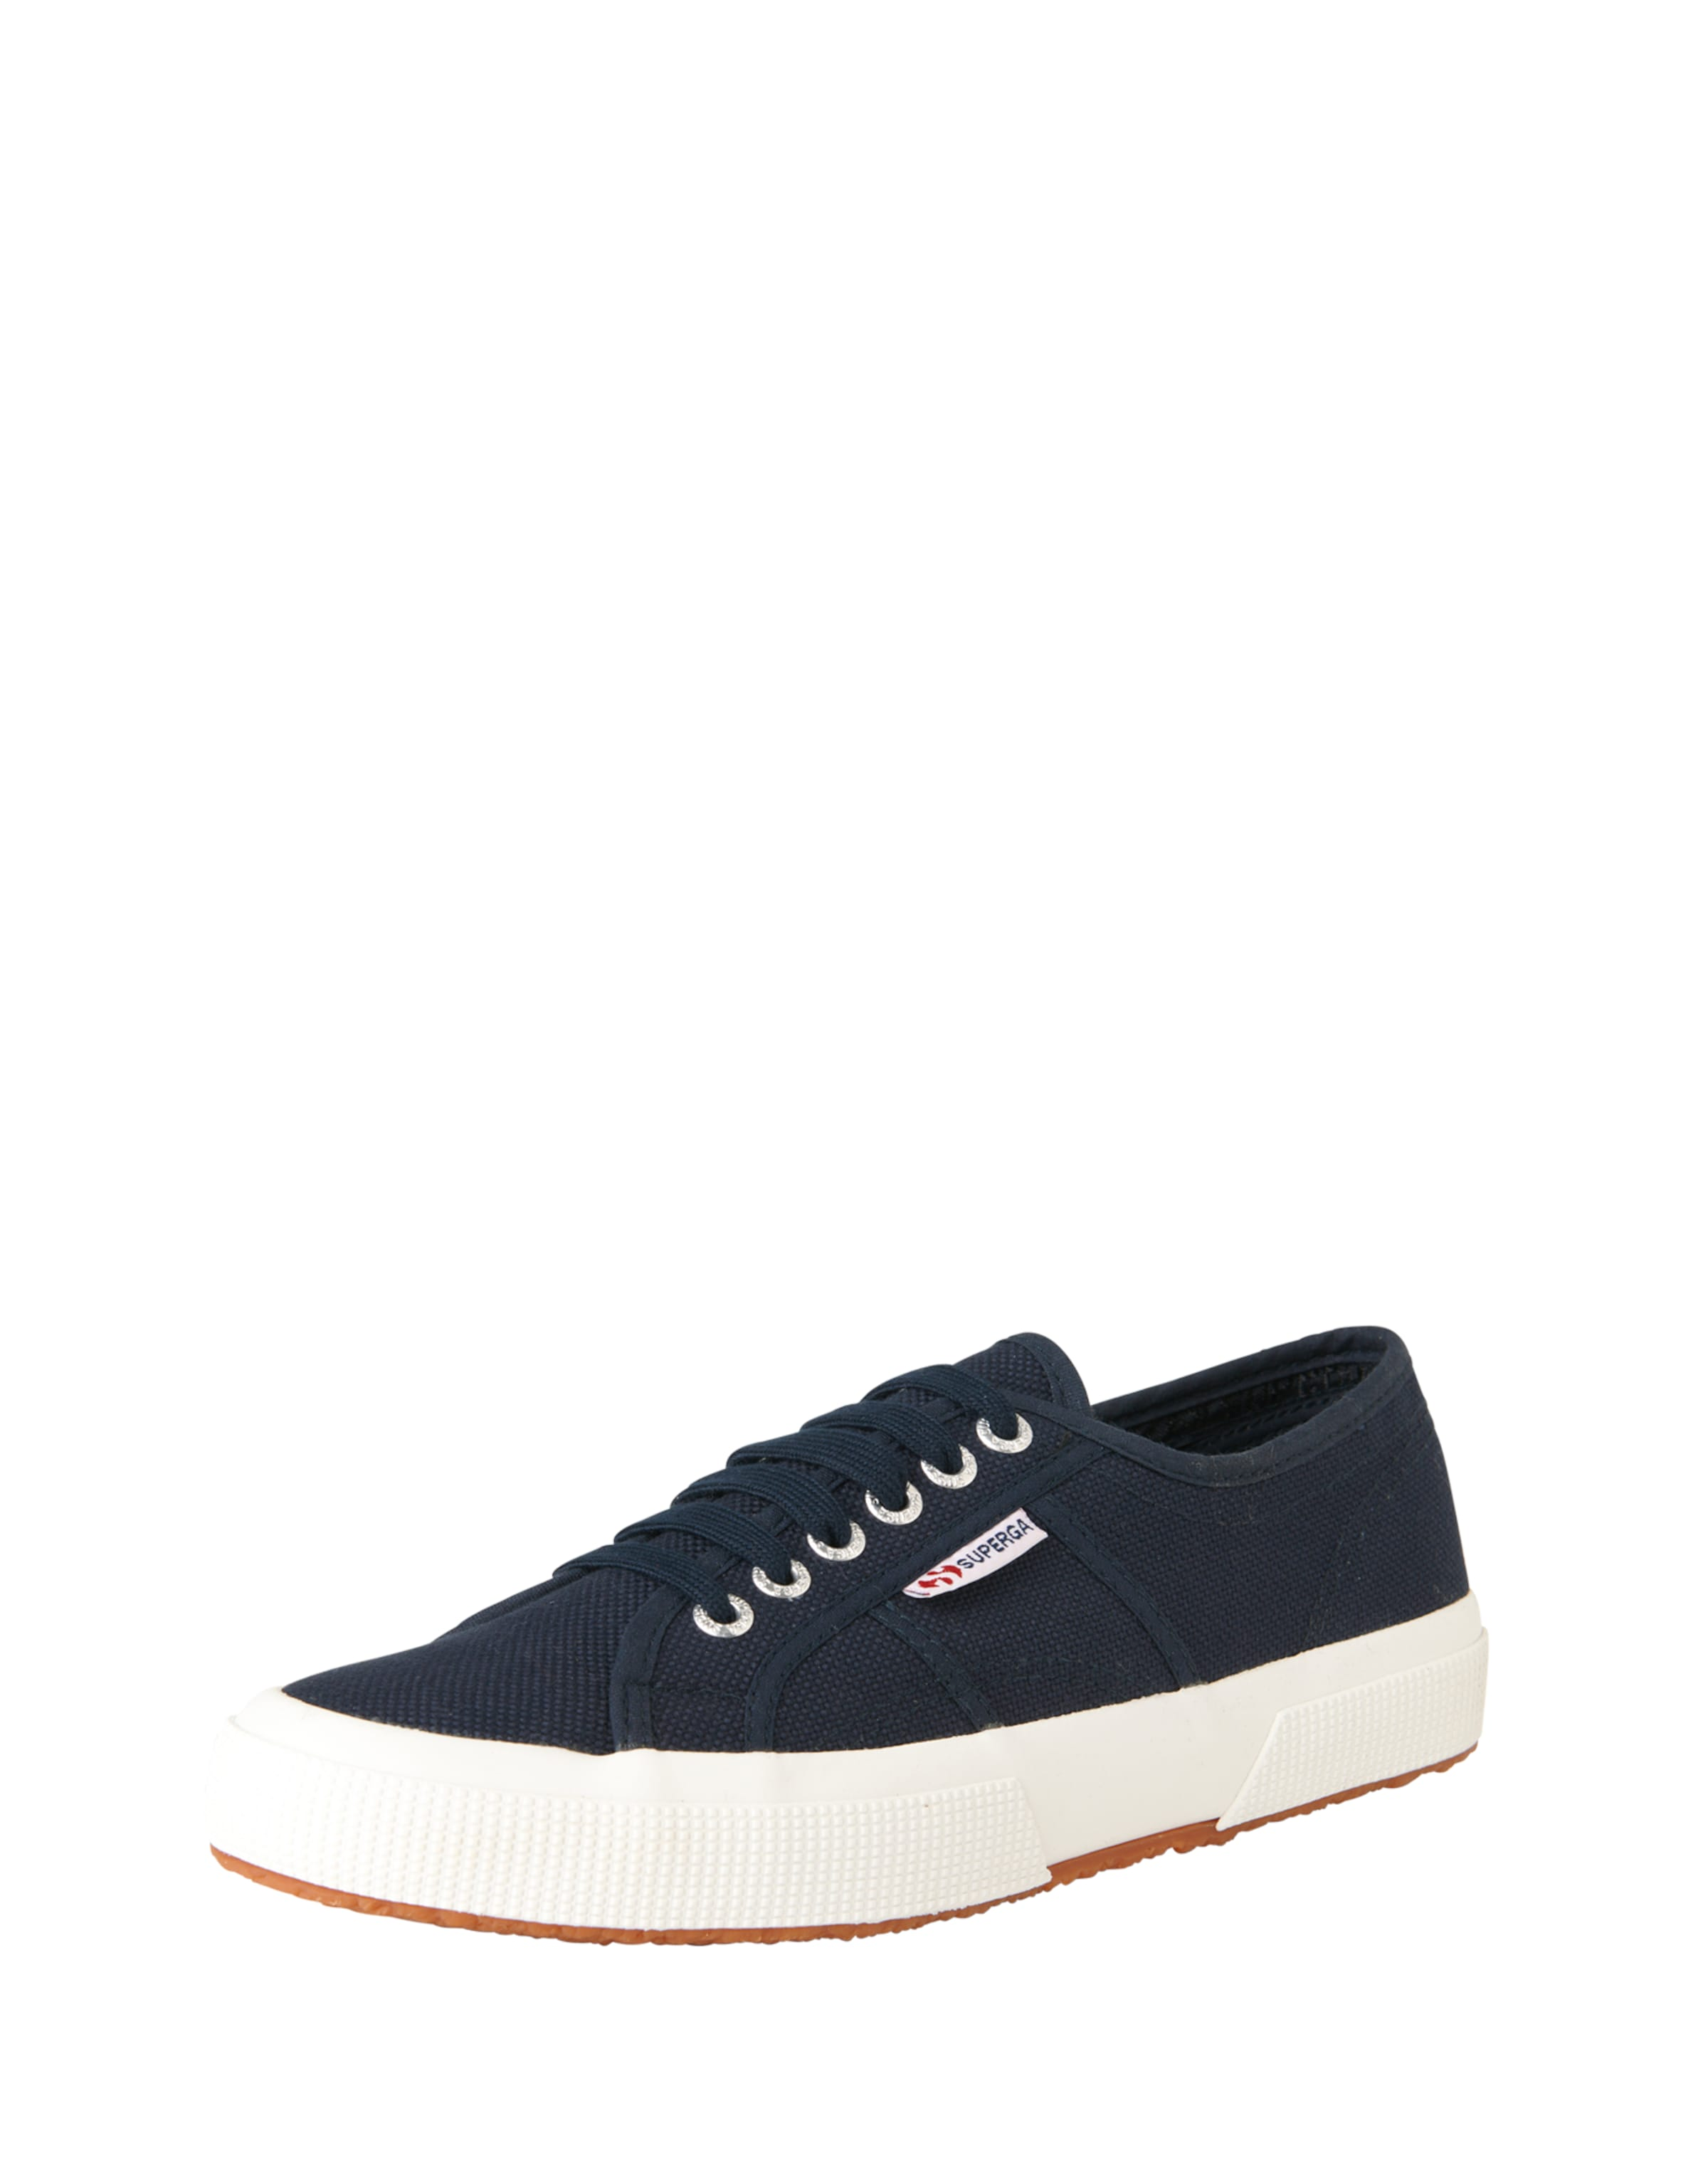 SUPERGA Canvas Sneaker  2750 Cotu Classic